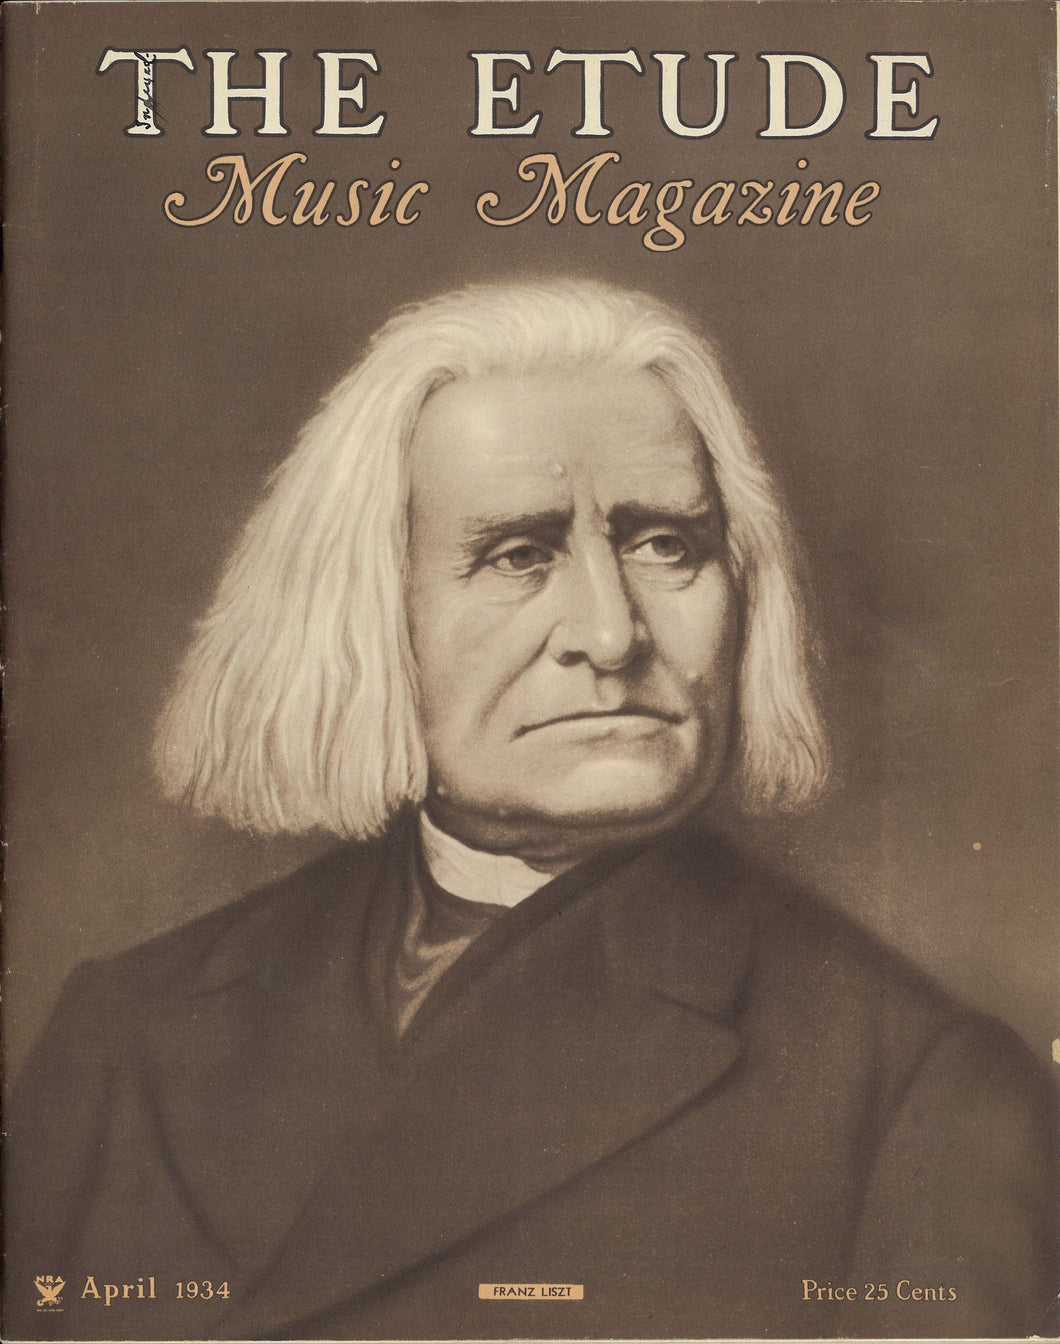 1934 April, The Etude Magazine - Franz Liszt